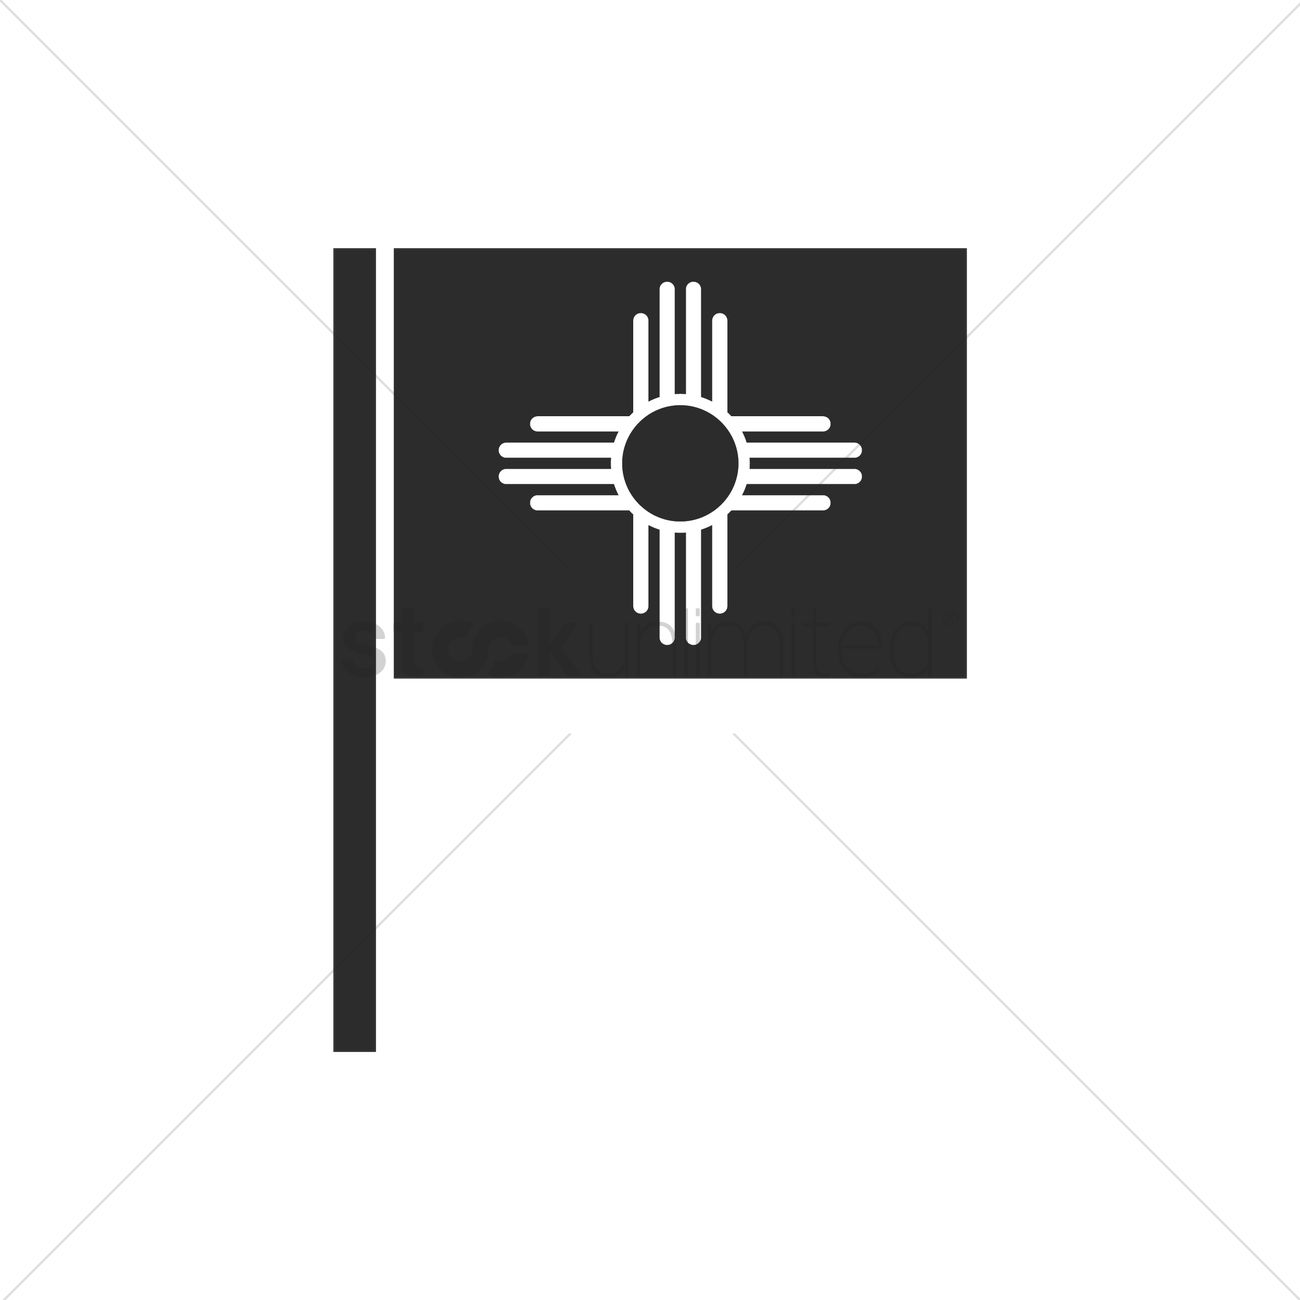 New Mexico Flag Vector Image 1617417 Stockunlimited